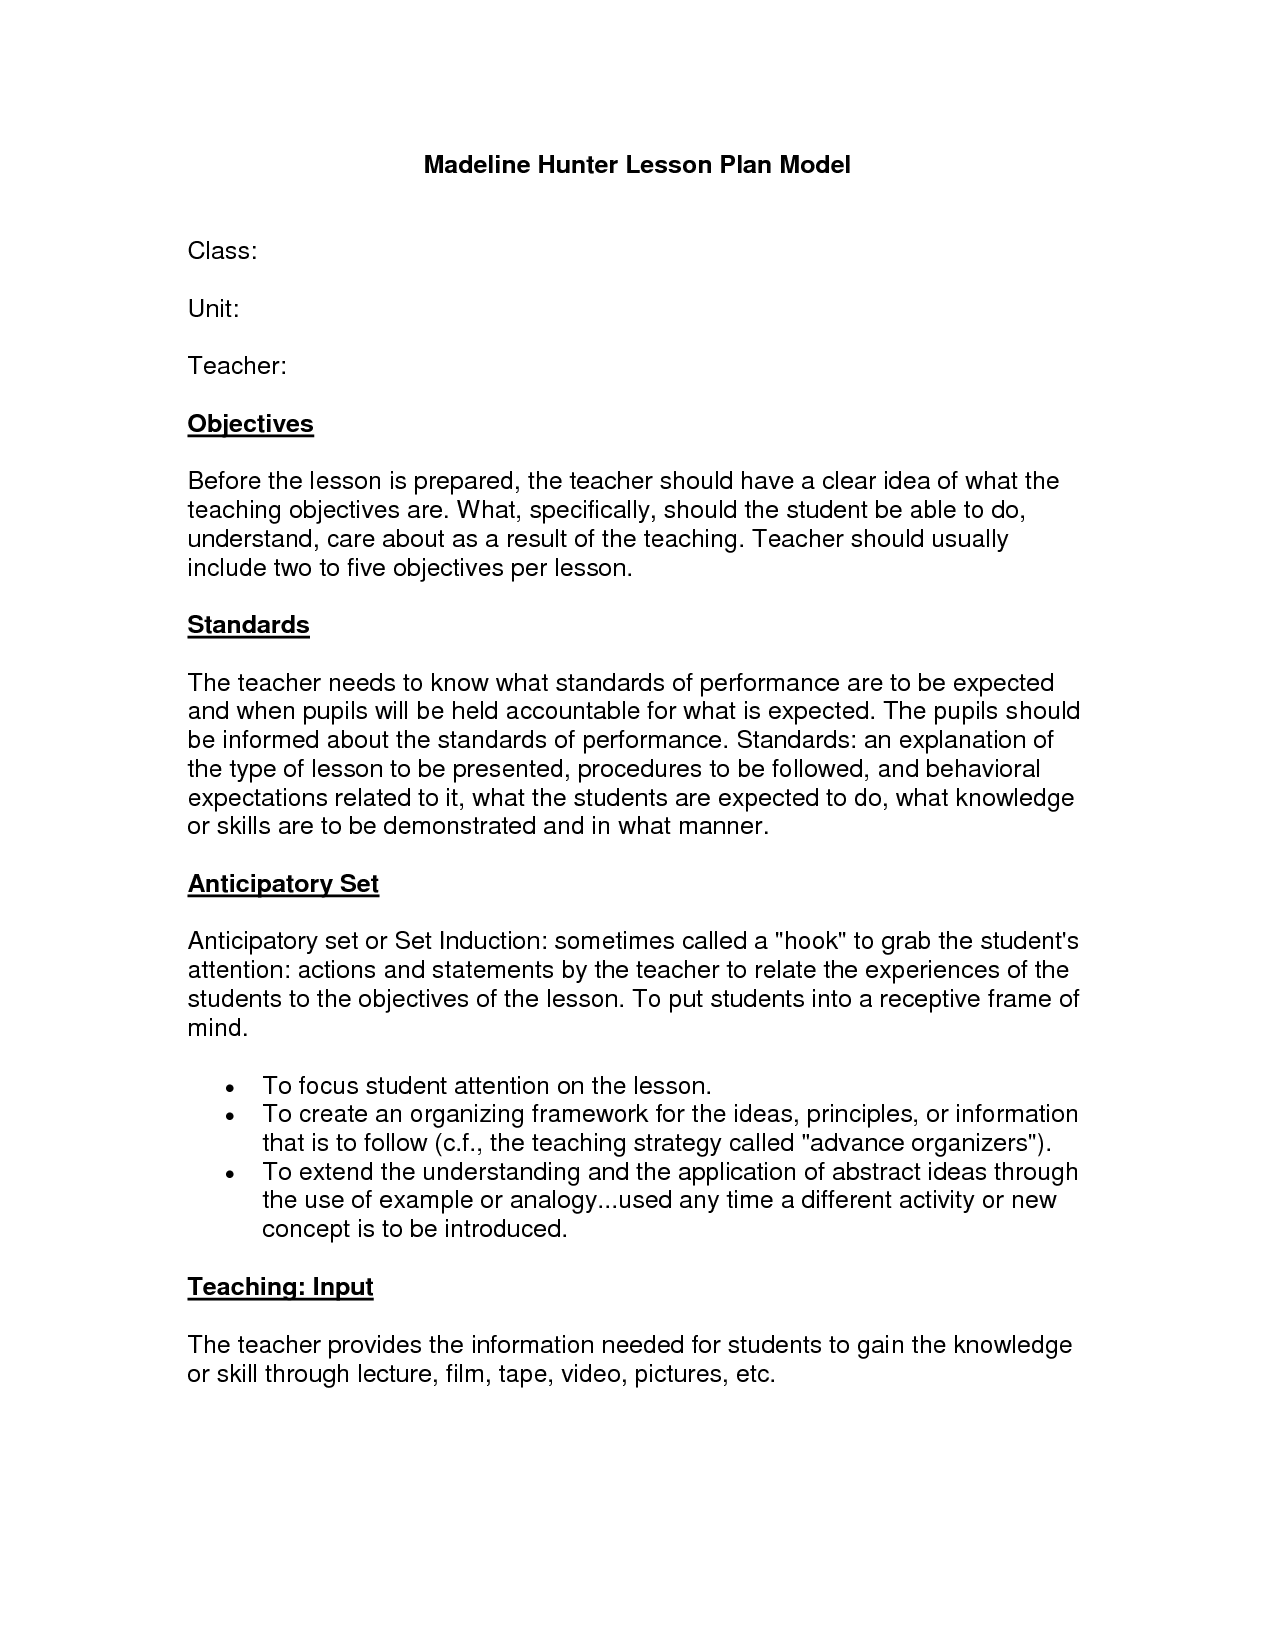 Madeline Hunter Lesson Plan Model By Ivz JqzqklO  Learning